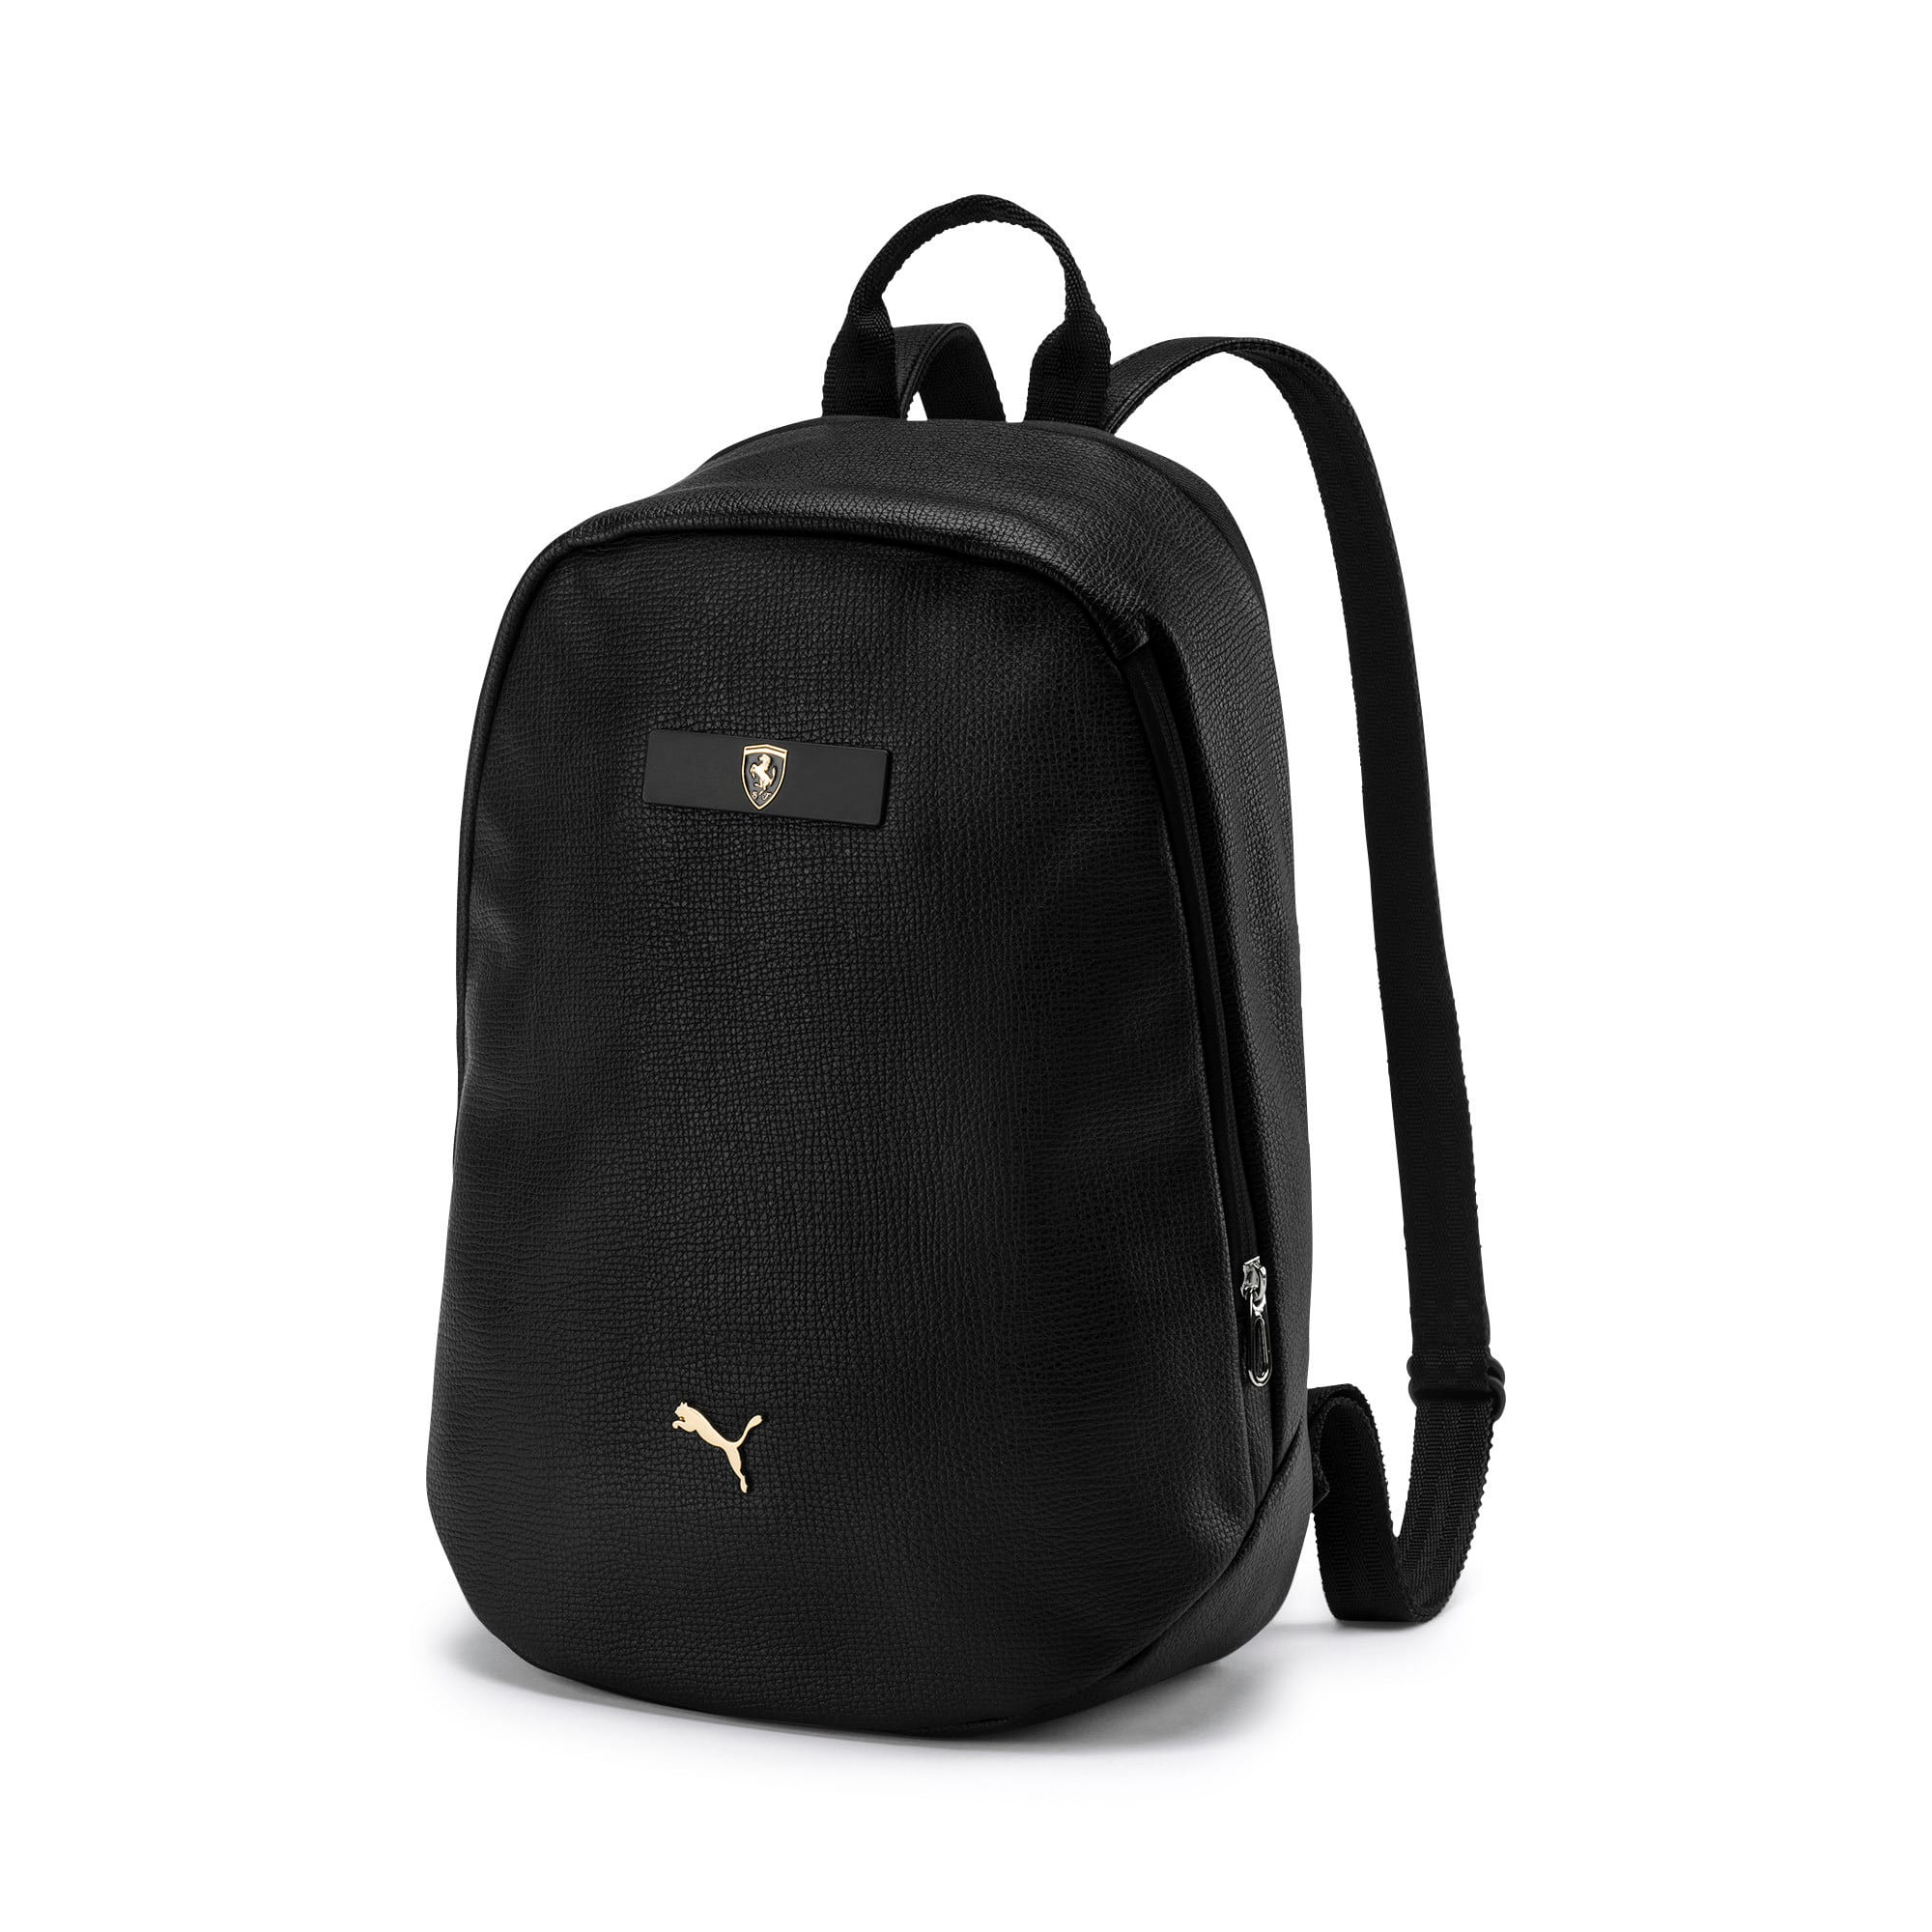 Thumbnail 1 of Ferrari Lifestyle Zainetto Rucksack, Puma Black, medium